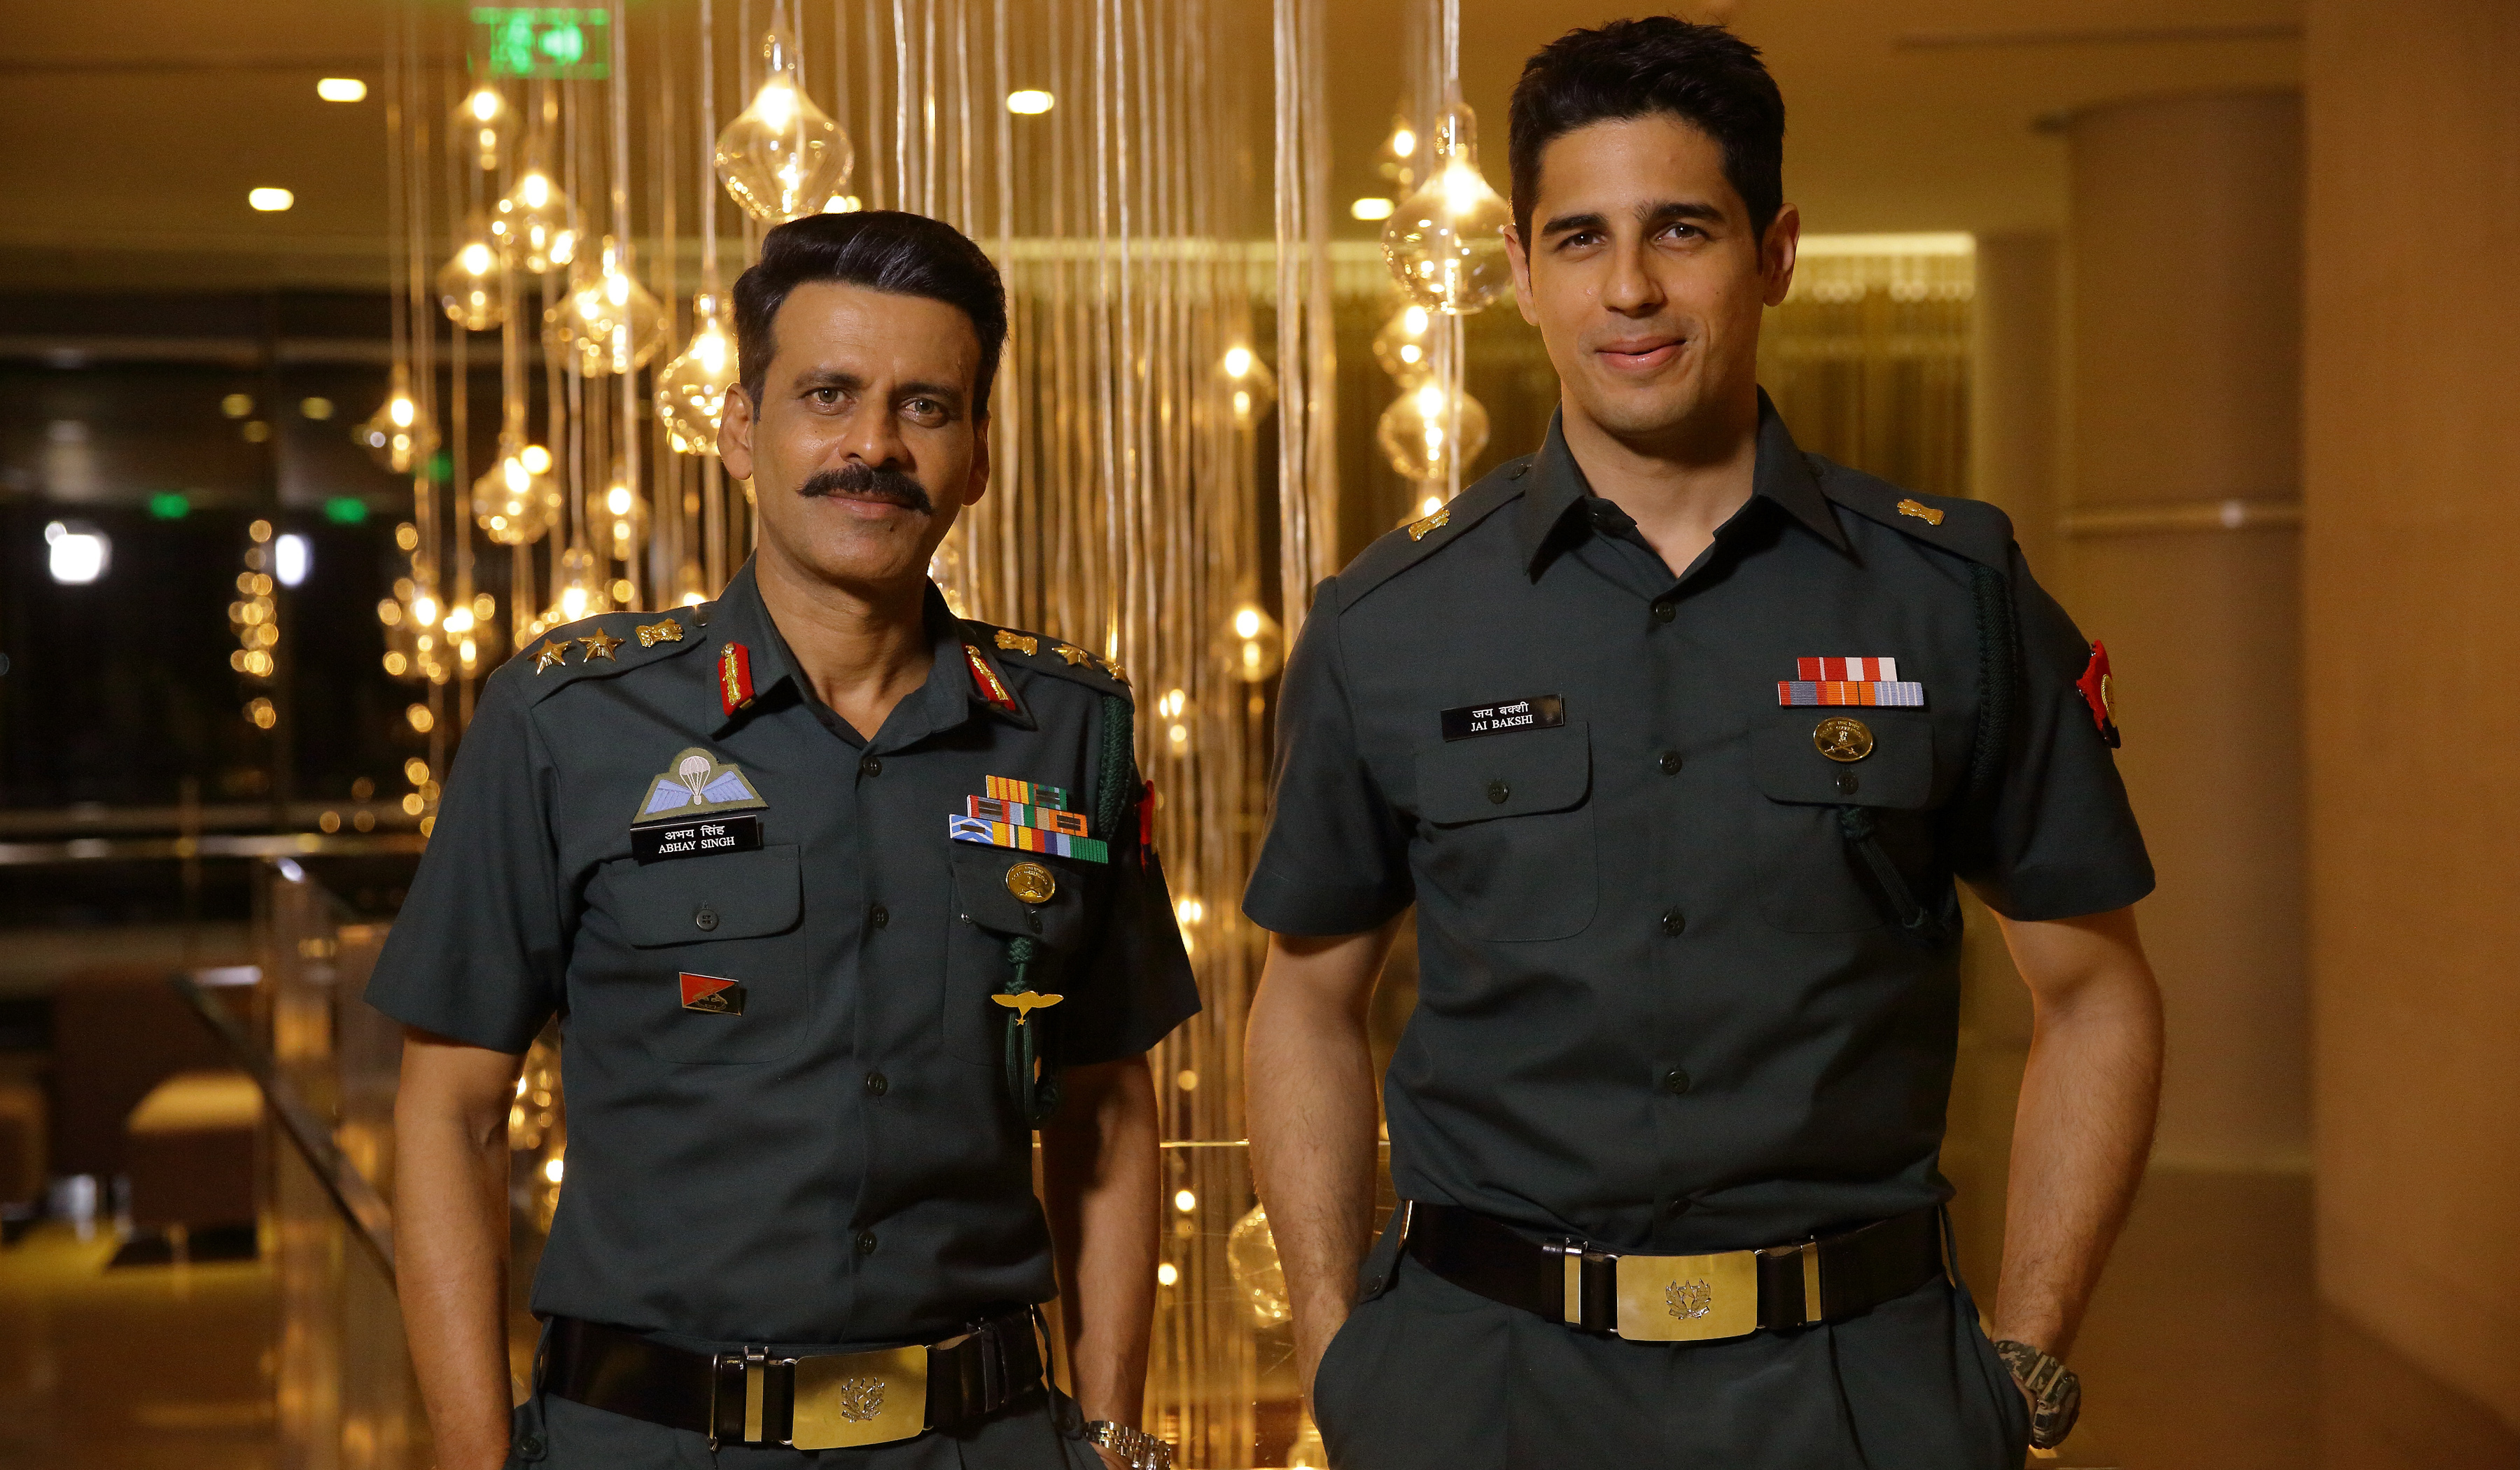 Film Aiyaari explores the lives of two Indian Army officers- a mentor and his protege essayed by Manoj Bajpai and Sidharth Malhotra respectively.